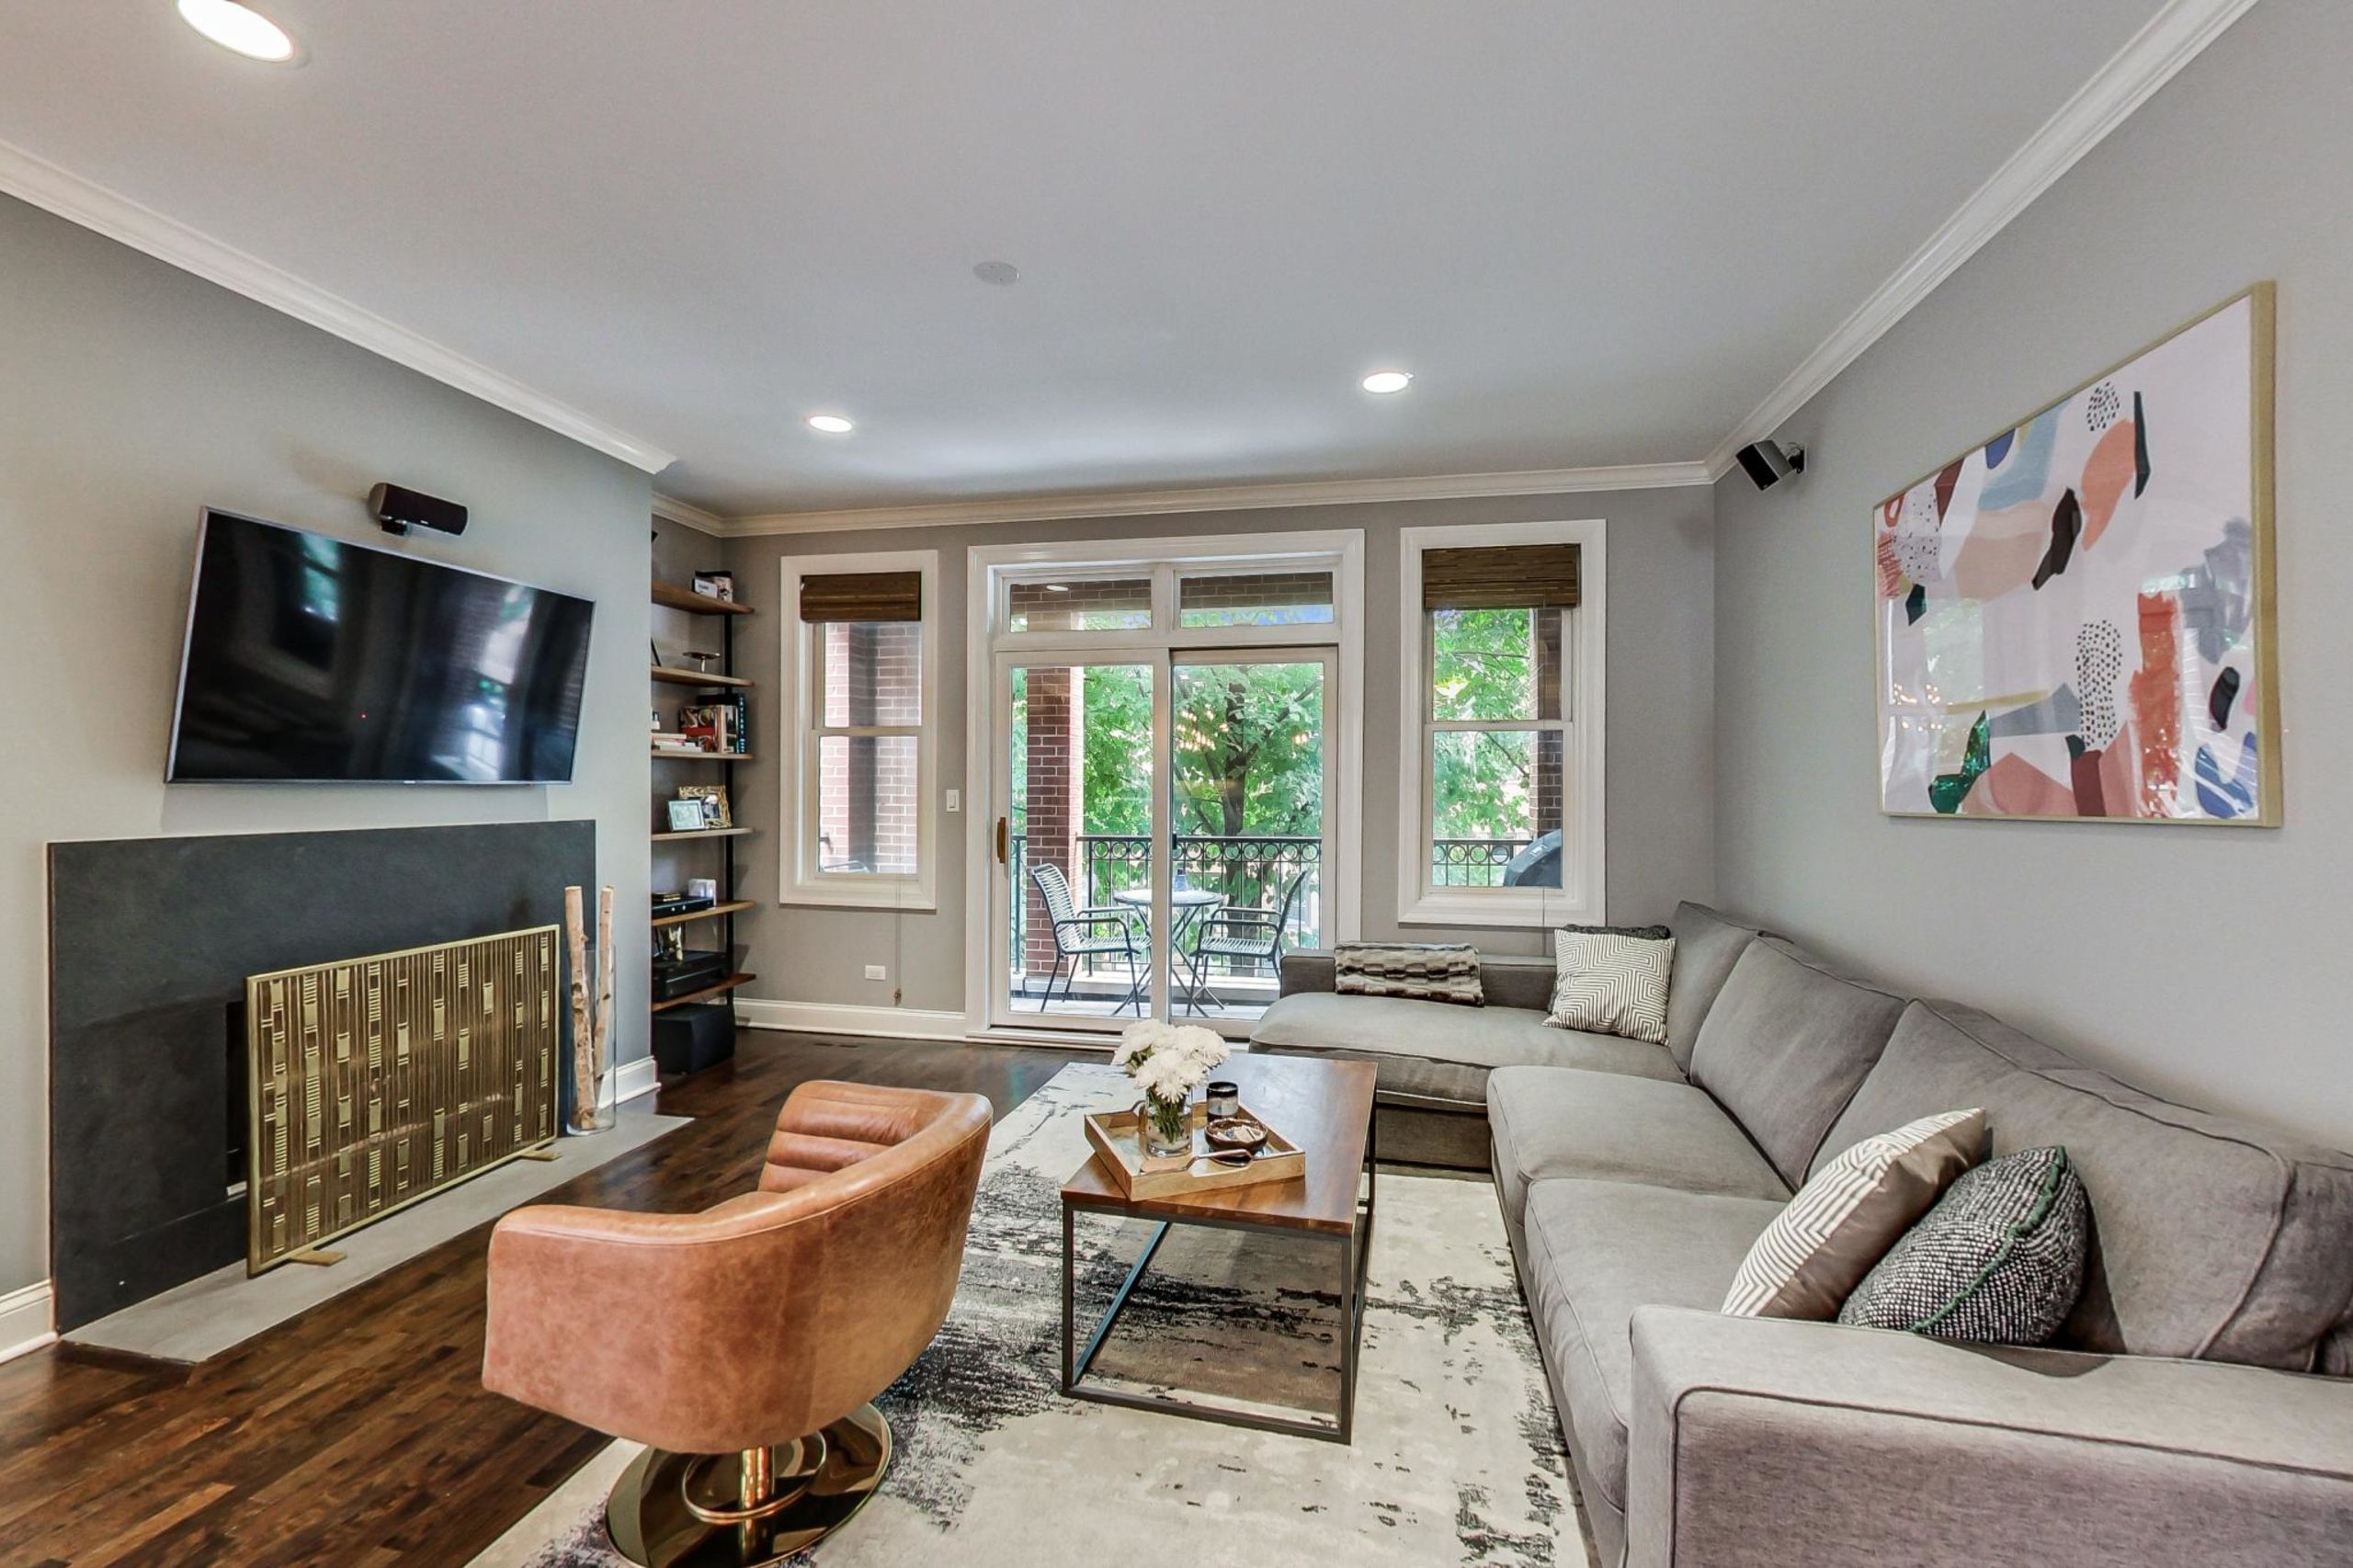 2940 North Sheffield #2N - For Sale